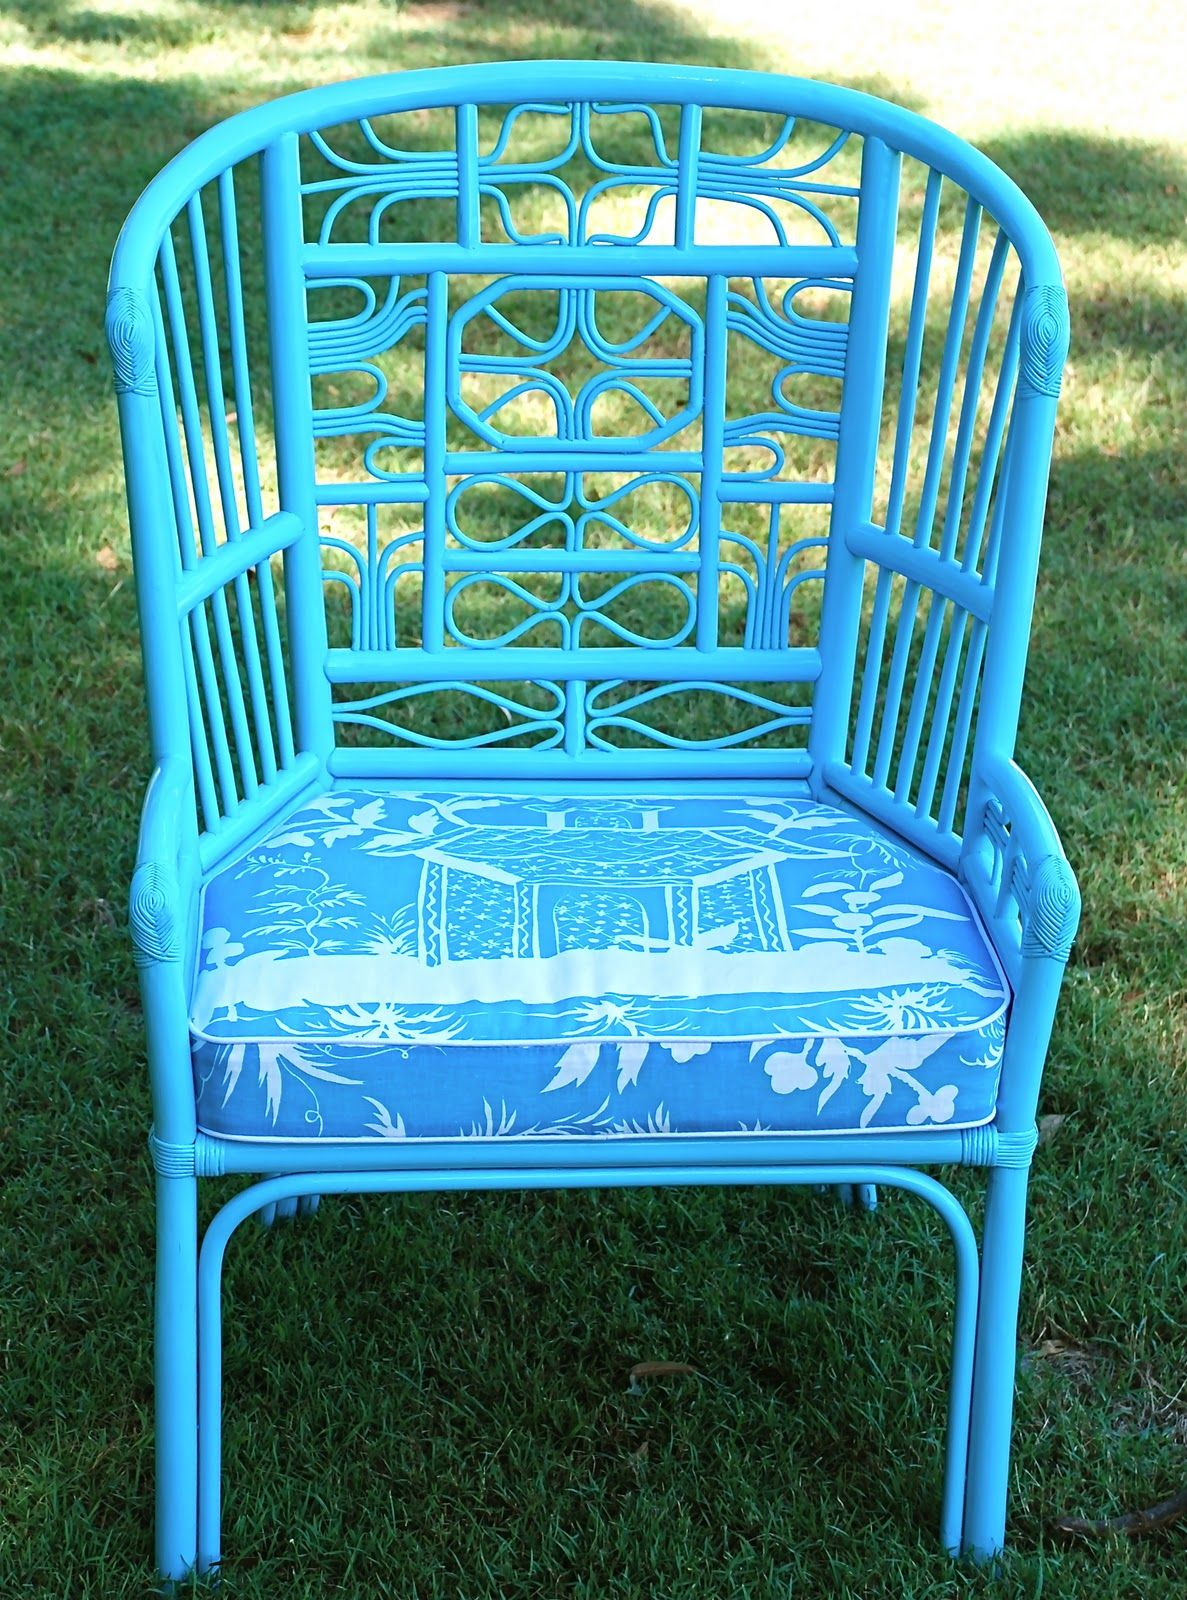 Painted chairs pinterest - Painted Bamboo Chairs